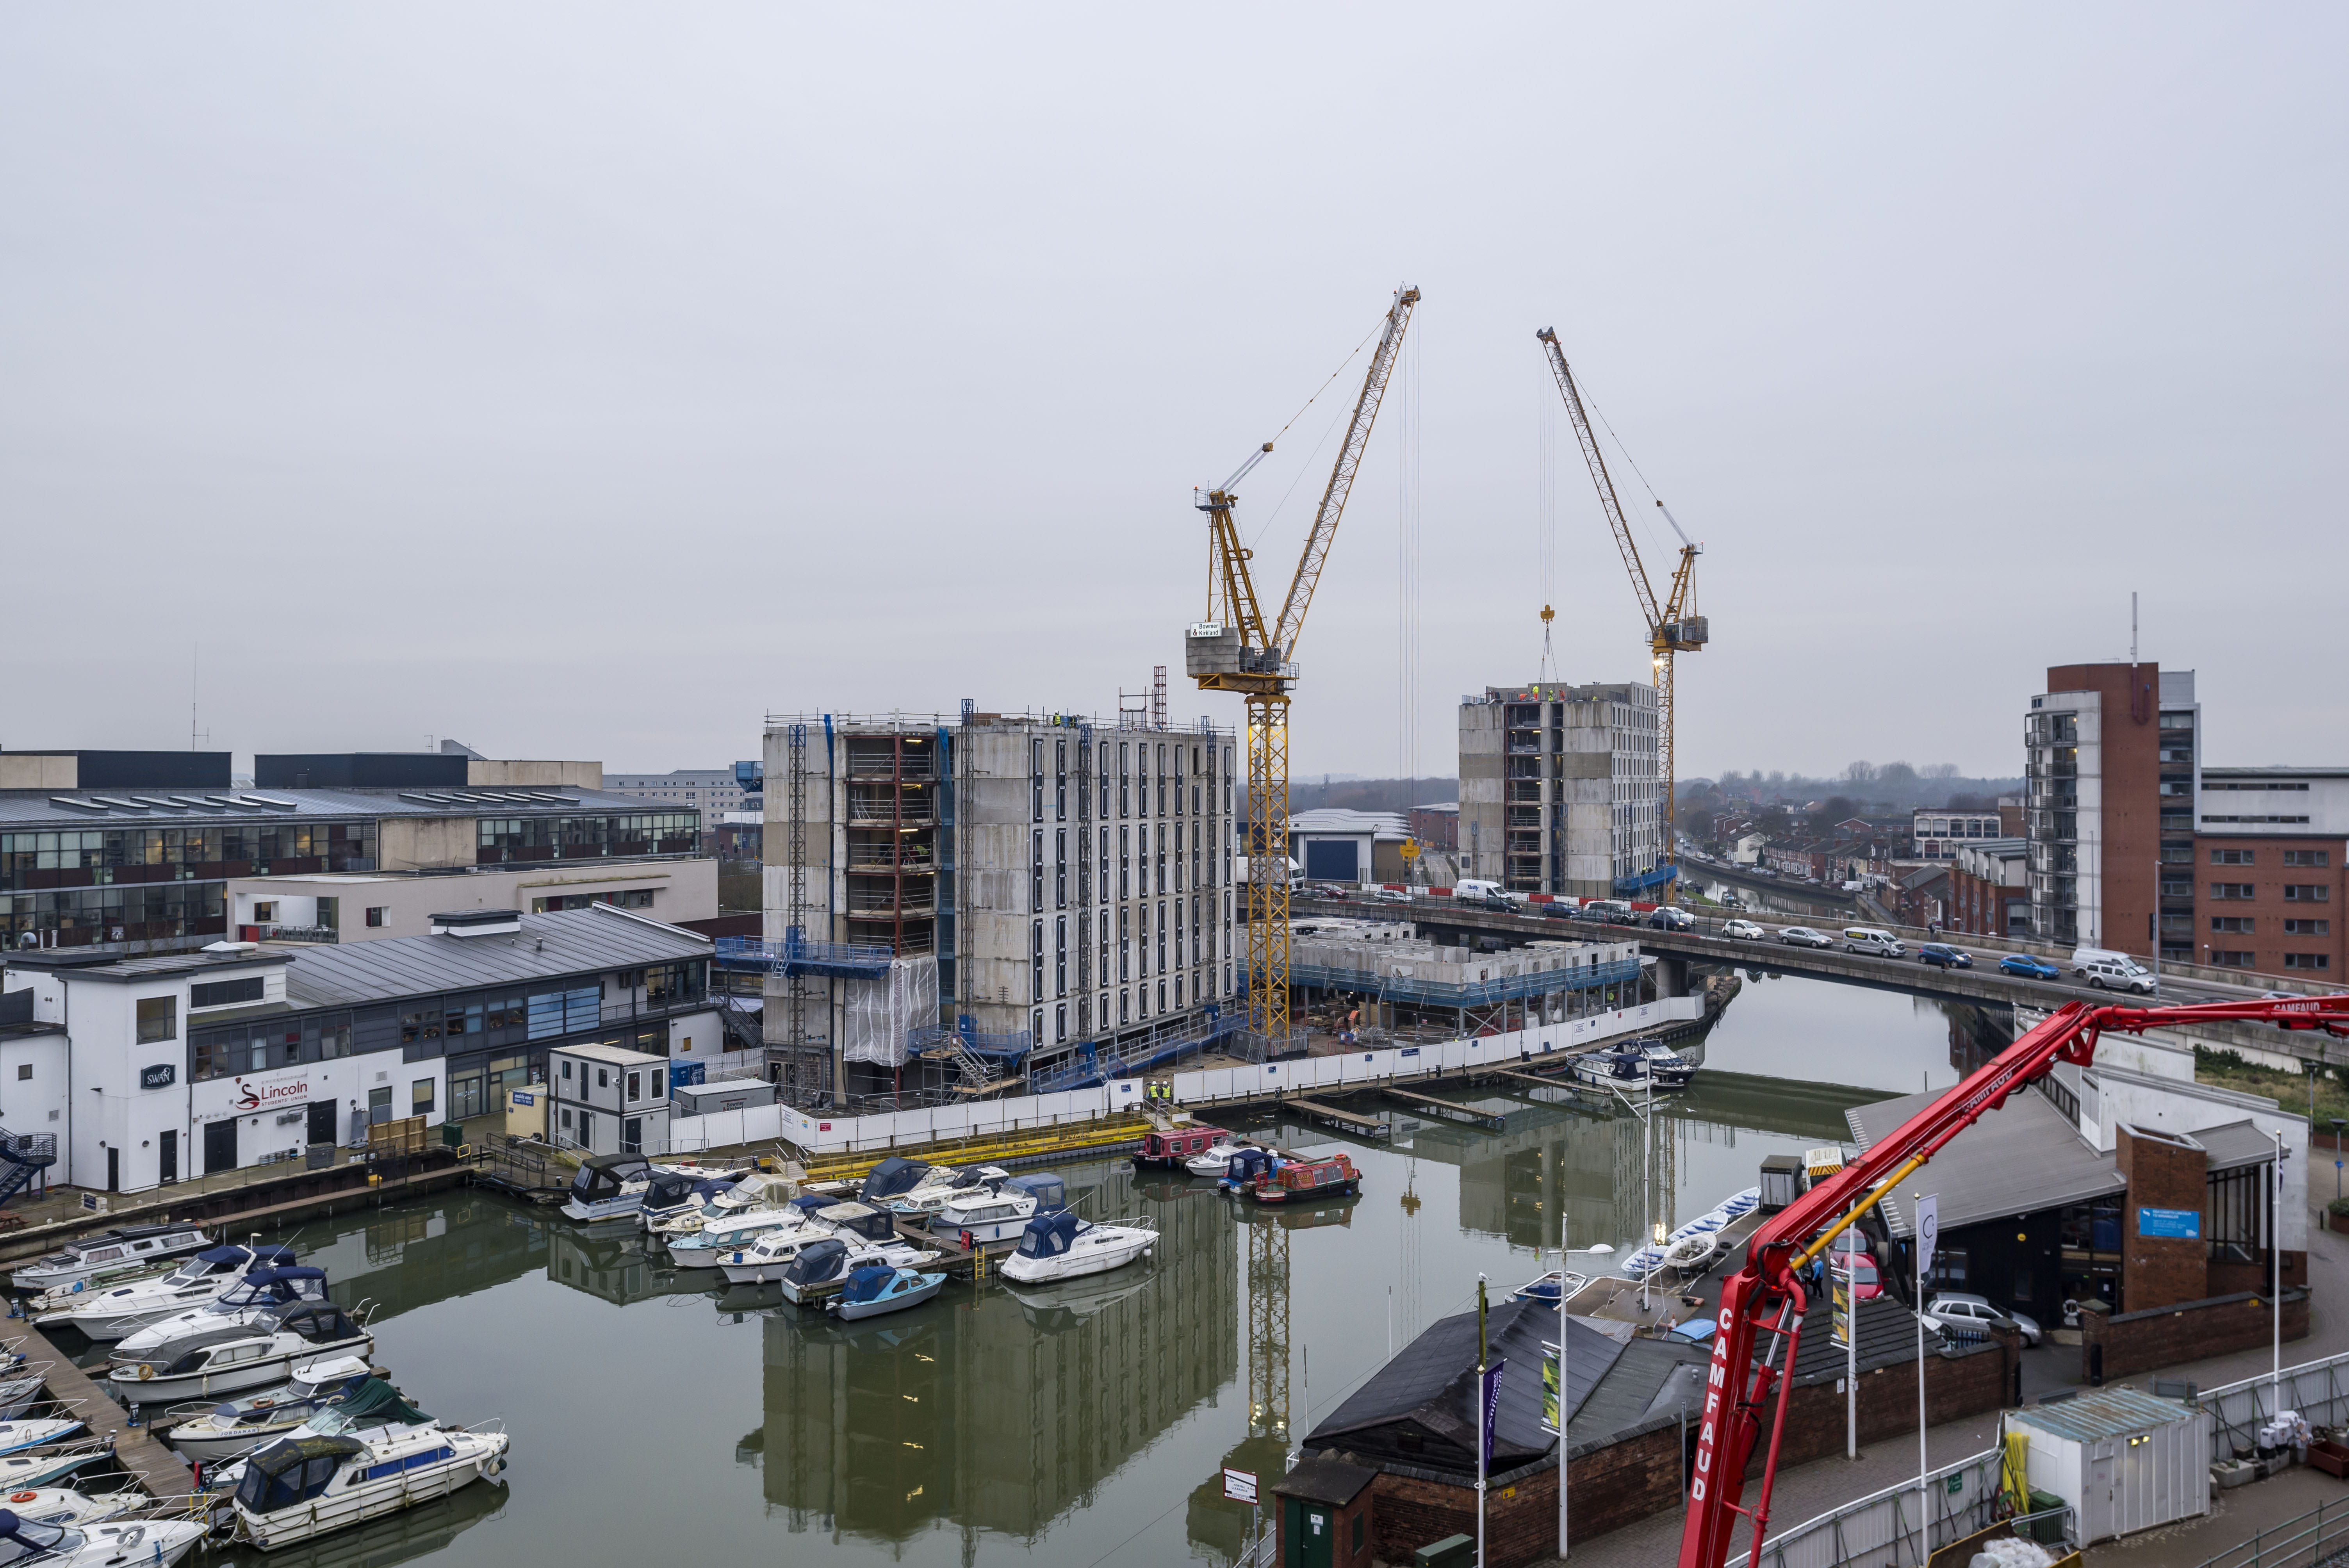 Image of the an accommodation block being built, two cranes work across a flyover